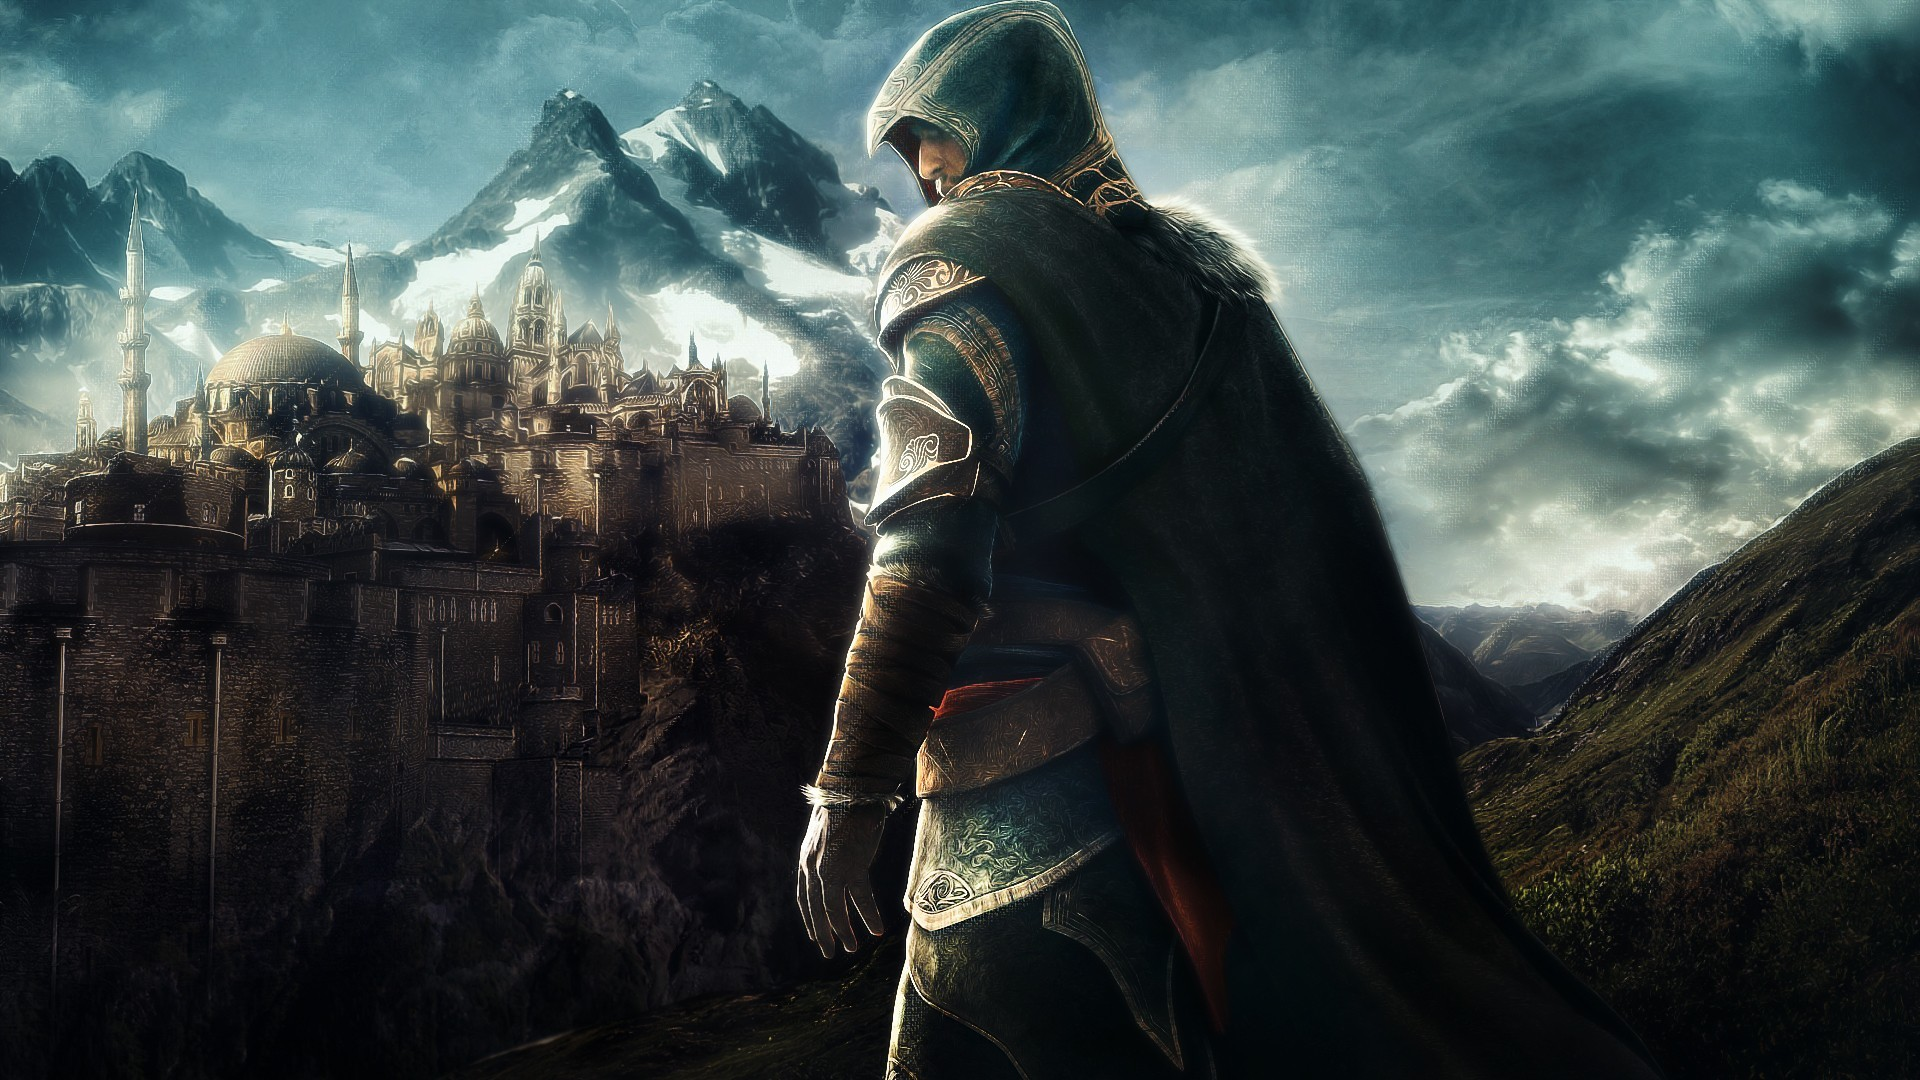 1920x1080 Video Games Wallpapers Part Album On Imgur 1920A 1080 Epic Game 41